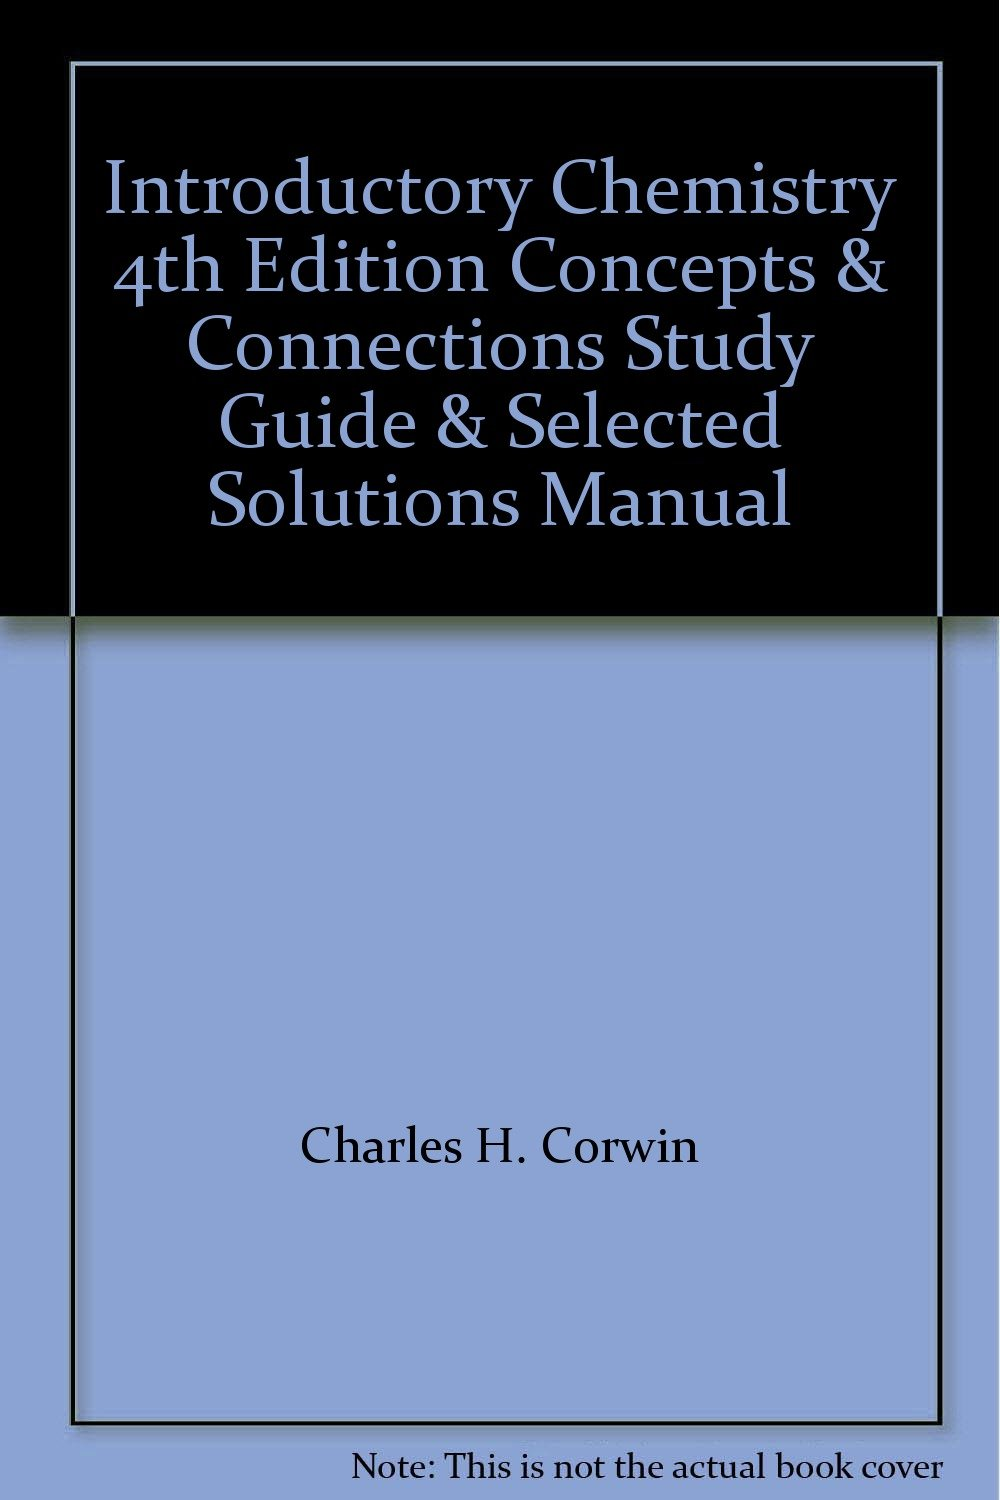 Introductory Chemistry: Concepts and Connections, by Corwin, 4th Edition,  Study Guide and Selected Solutions Manual: Charles H. Corwin: Amazon.com:  Books